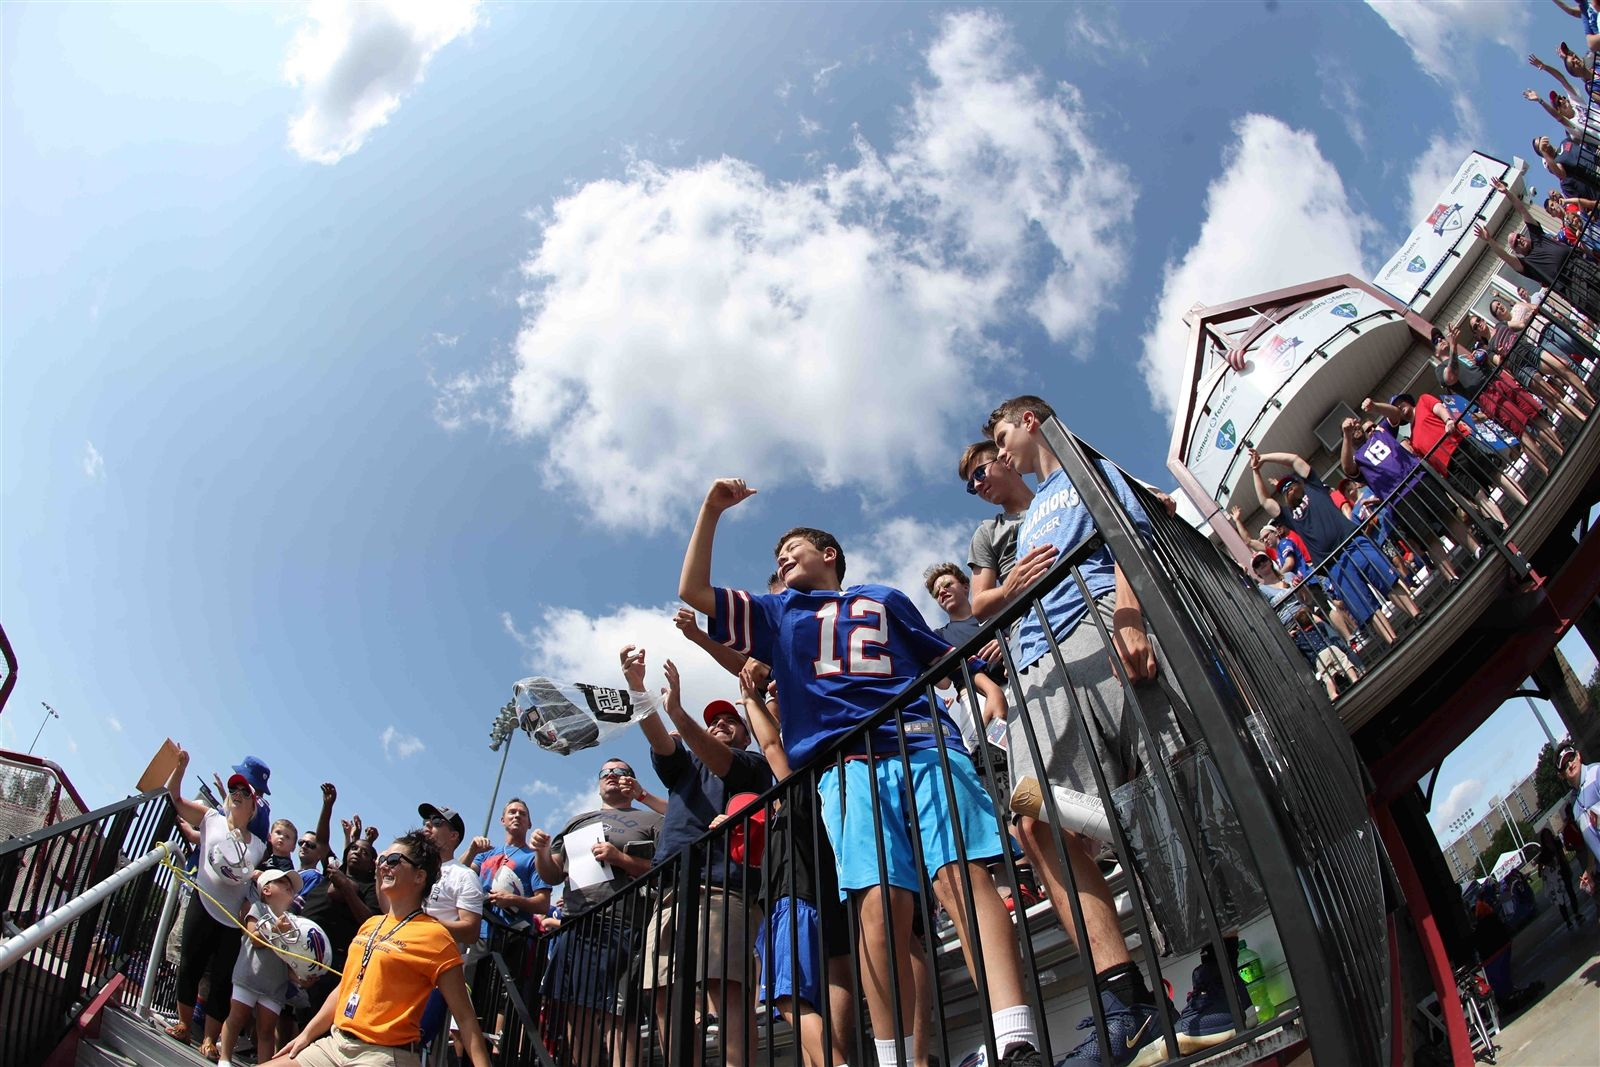 Fans enjoy watching the Bills practice from the Polisseni Track and Field Complex during the third day of training camp.